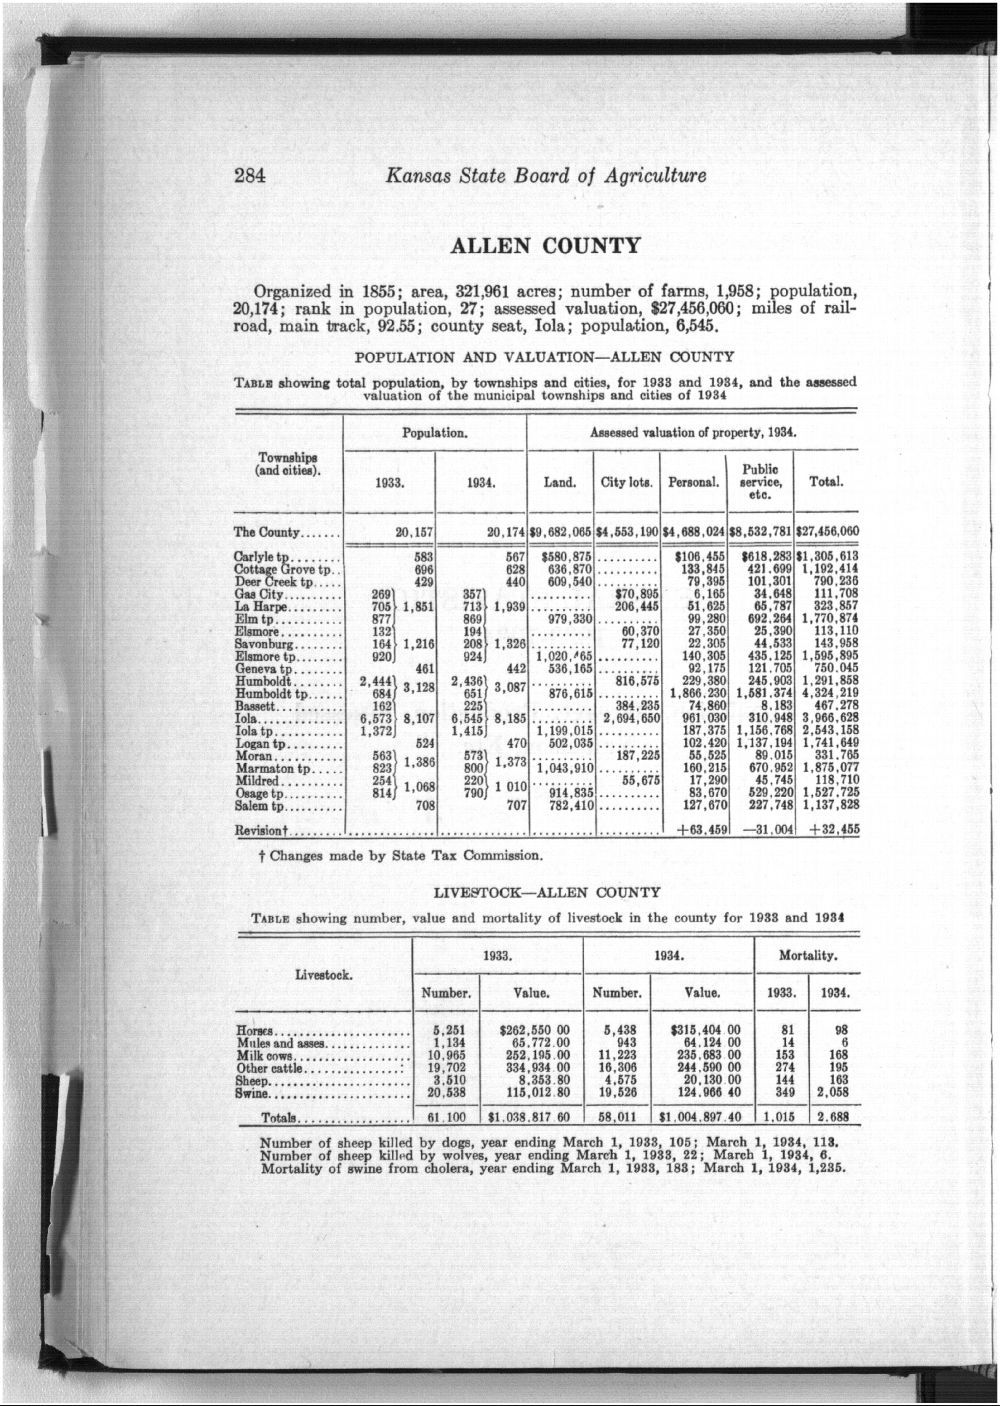 Twenty-ninth Biennial Report, Statistics by county showing population, acreage, production, and livestock, 1933-1934 - 284